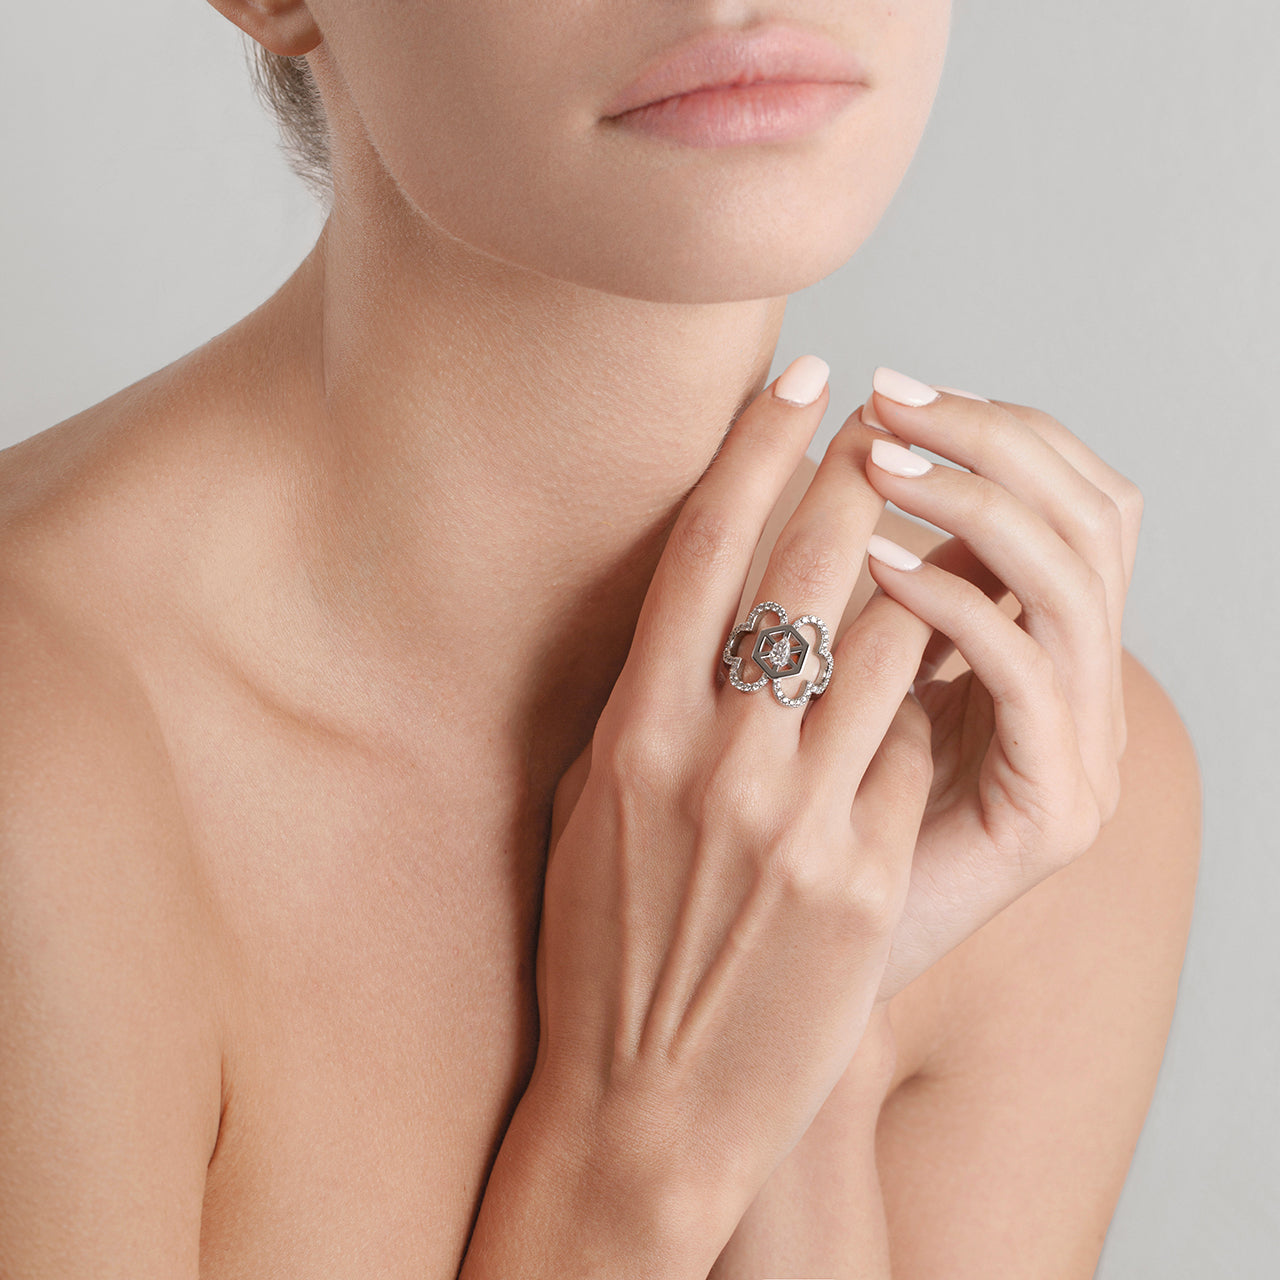 Aqua Double Cloud Ring with Diamonds on Model